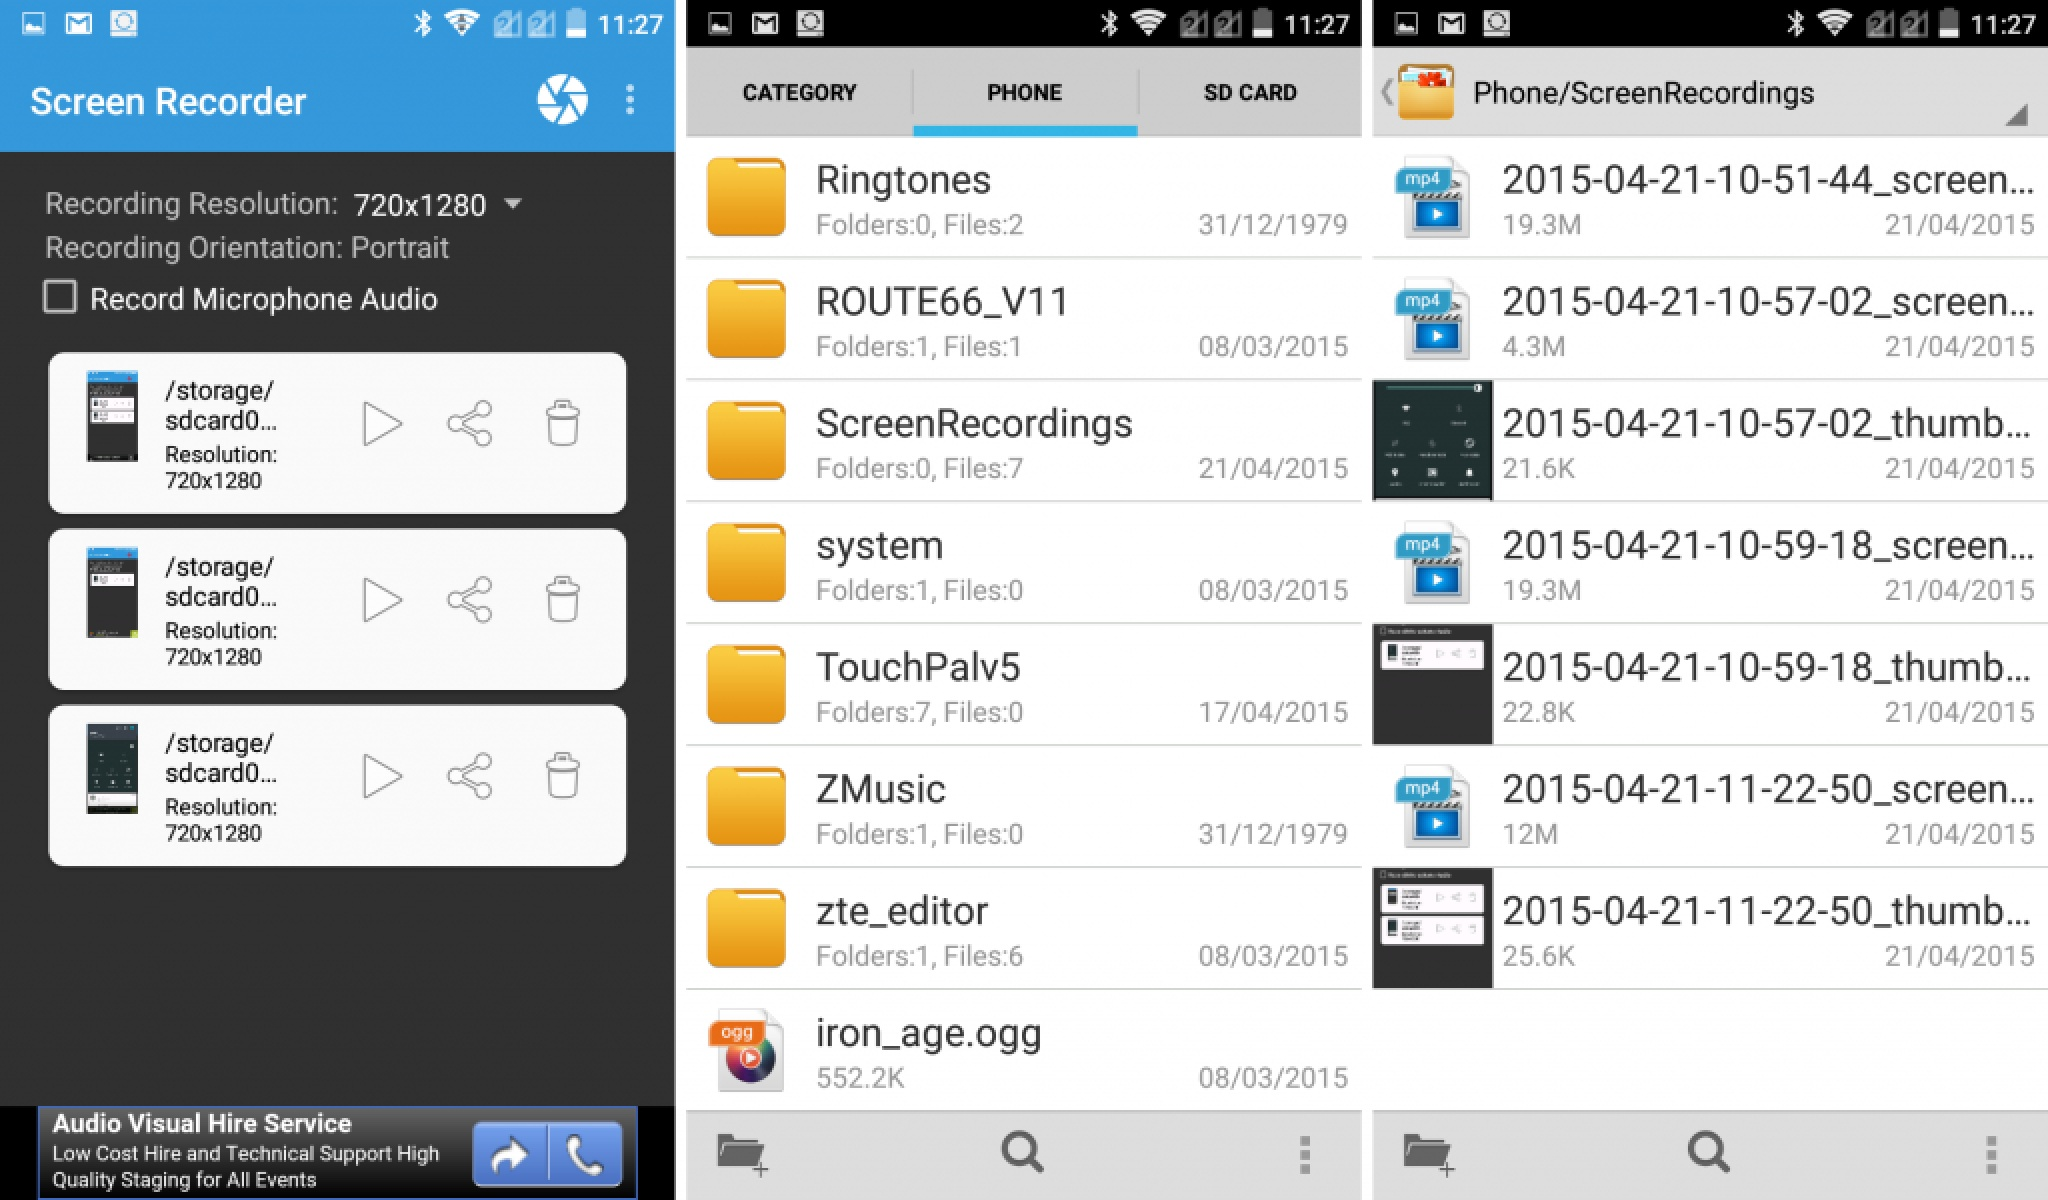 screen recorder by yologadget